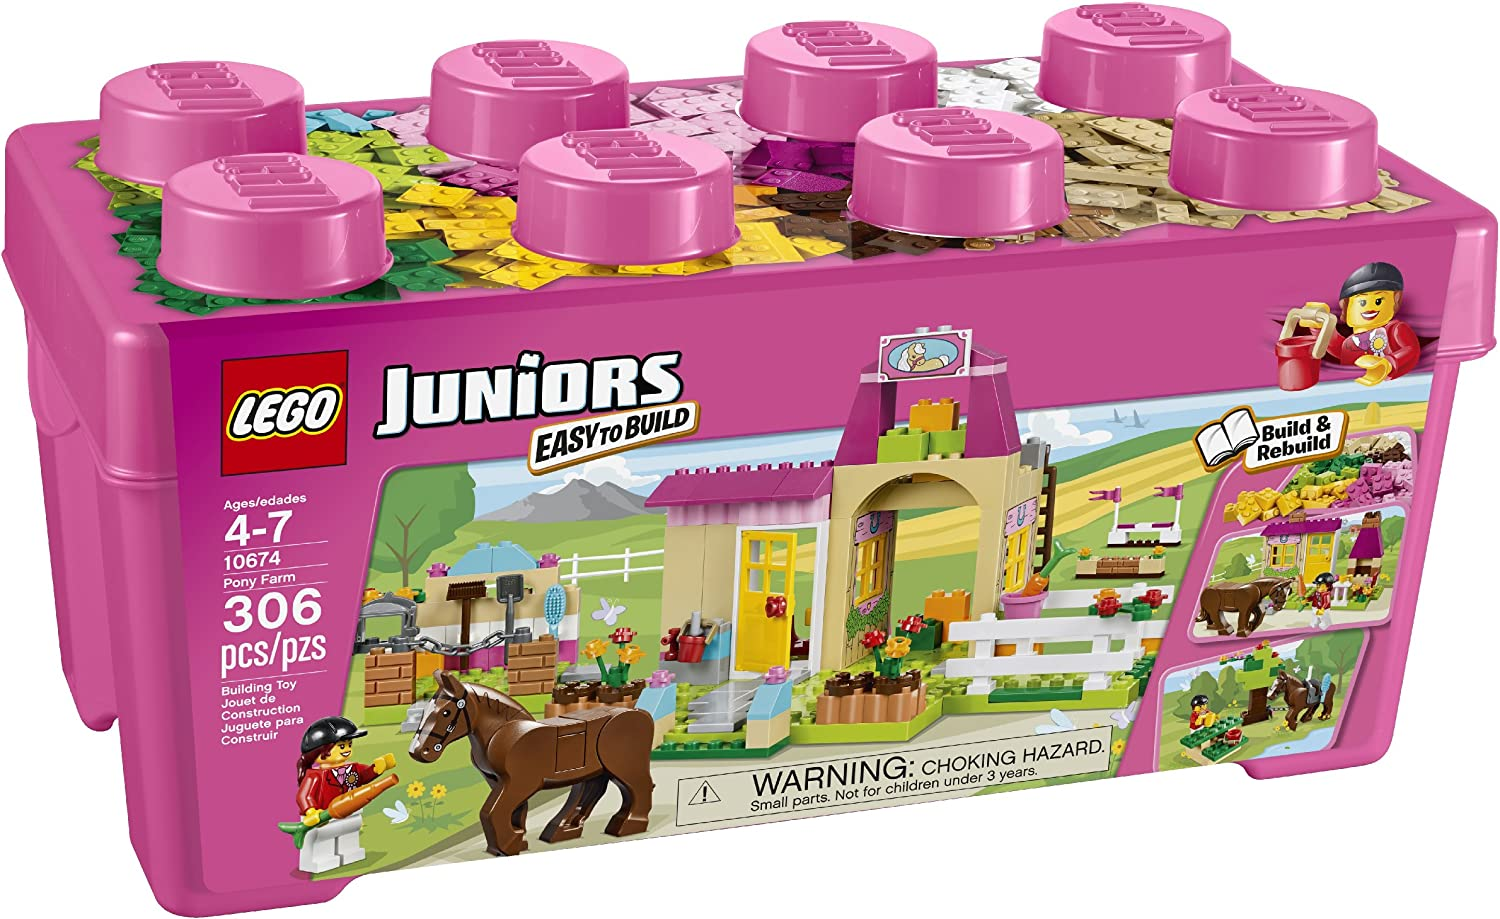 LEGO Juniors 10674 Pony Farm